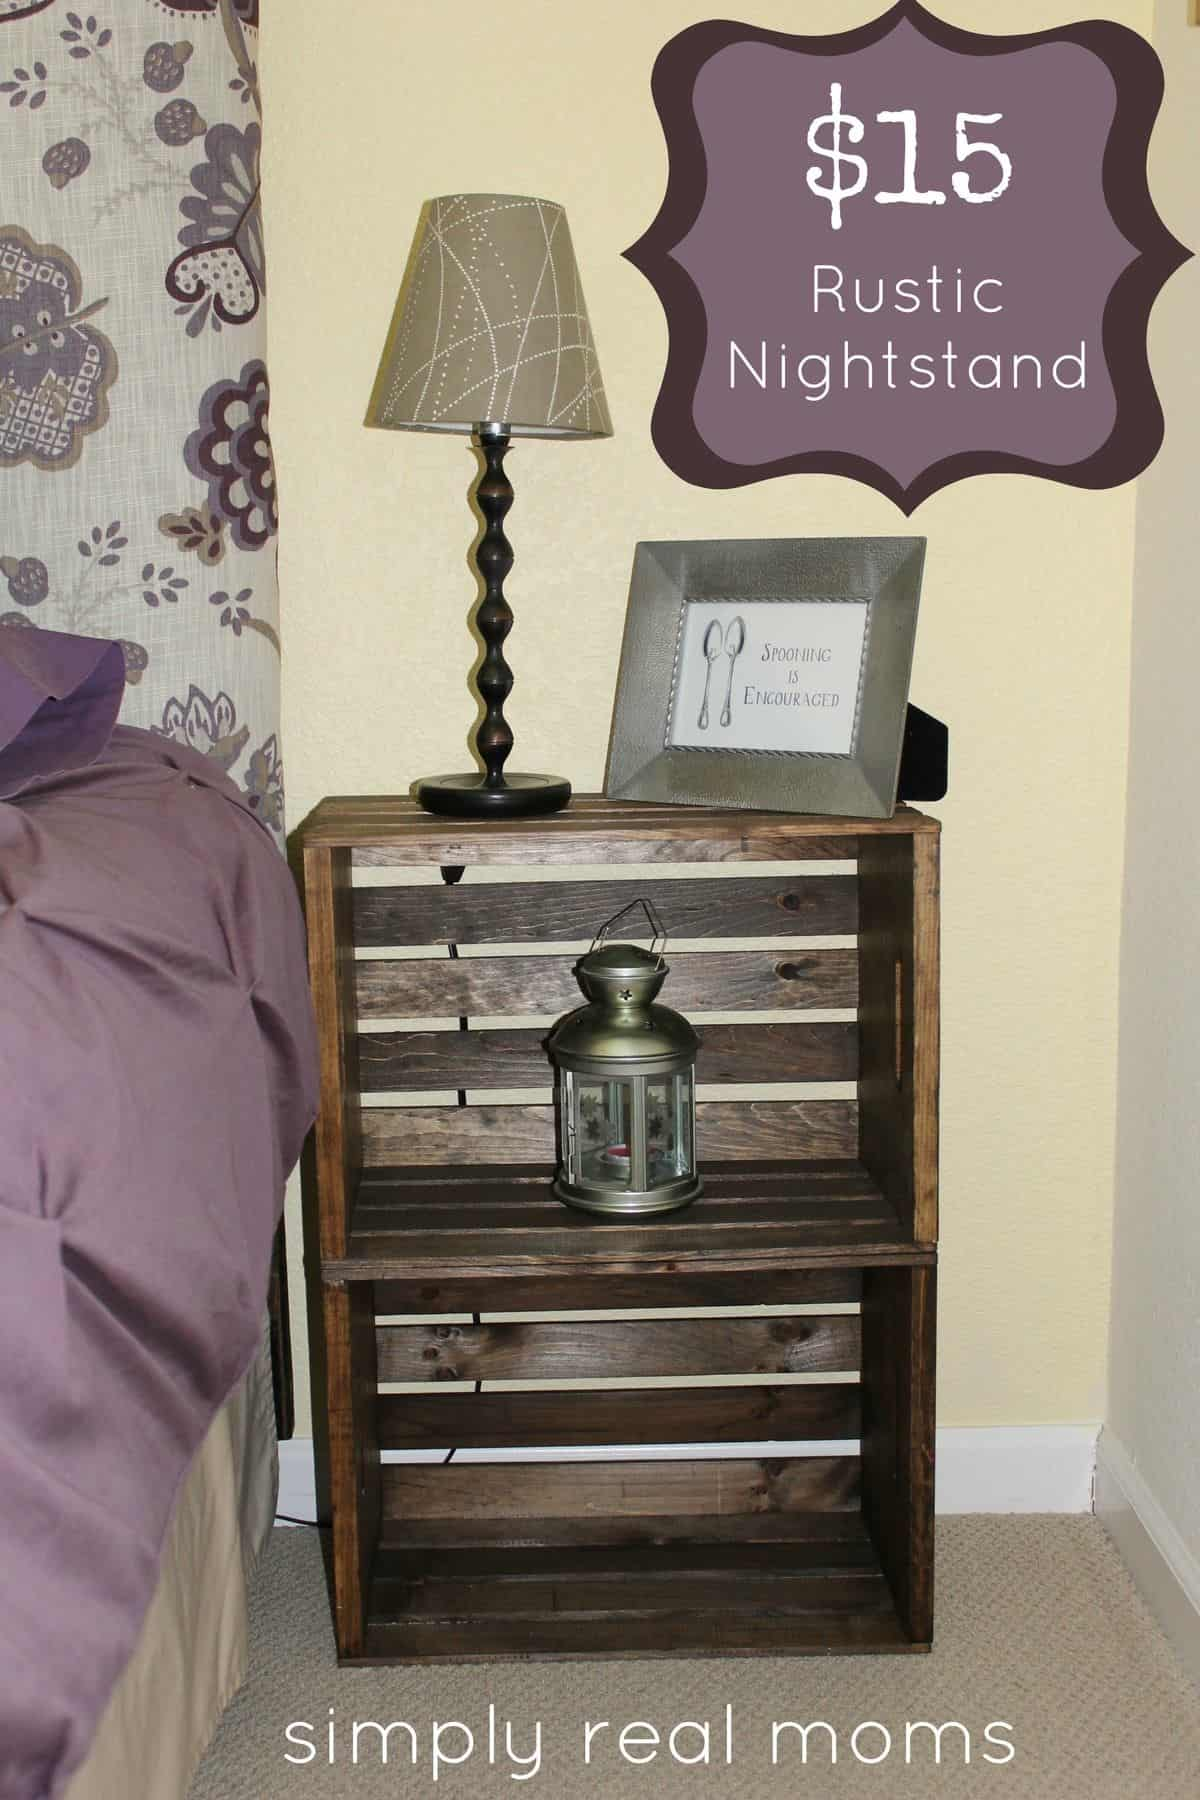 Affordable rustic night stand